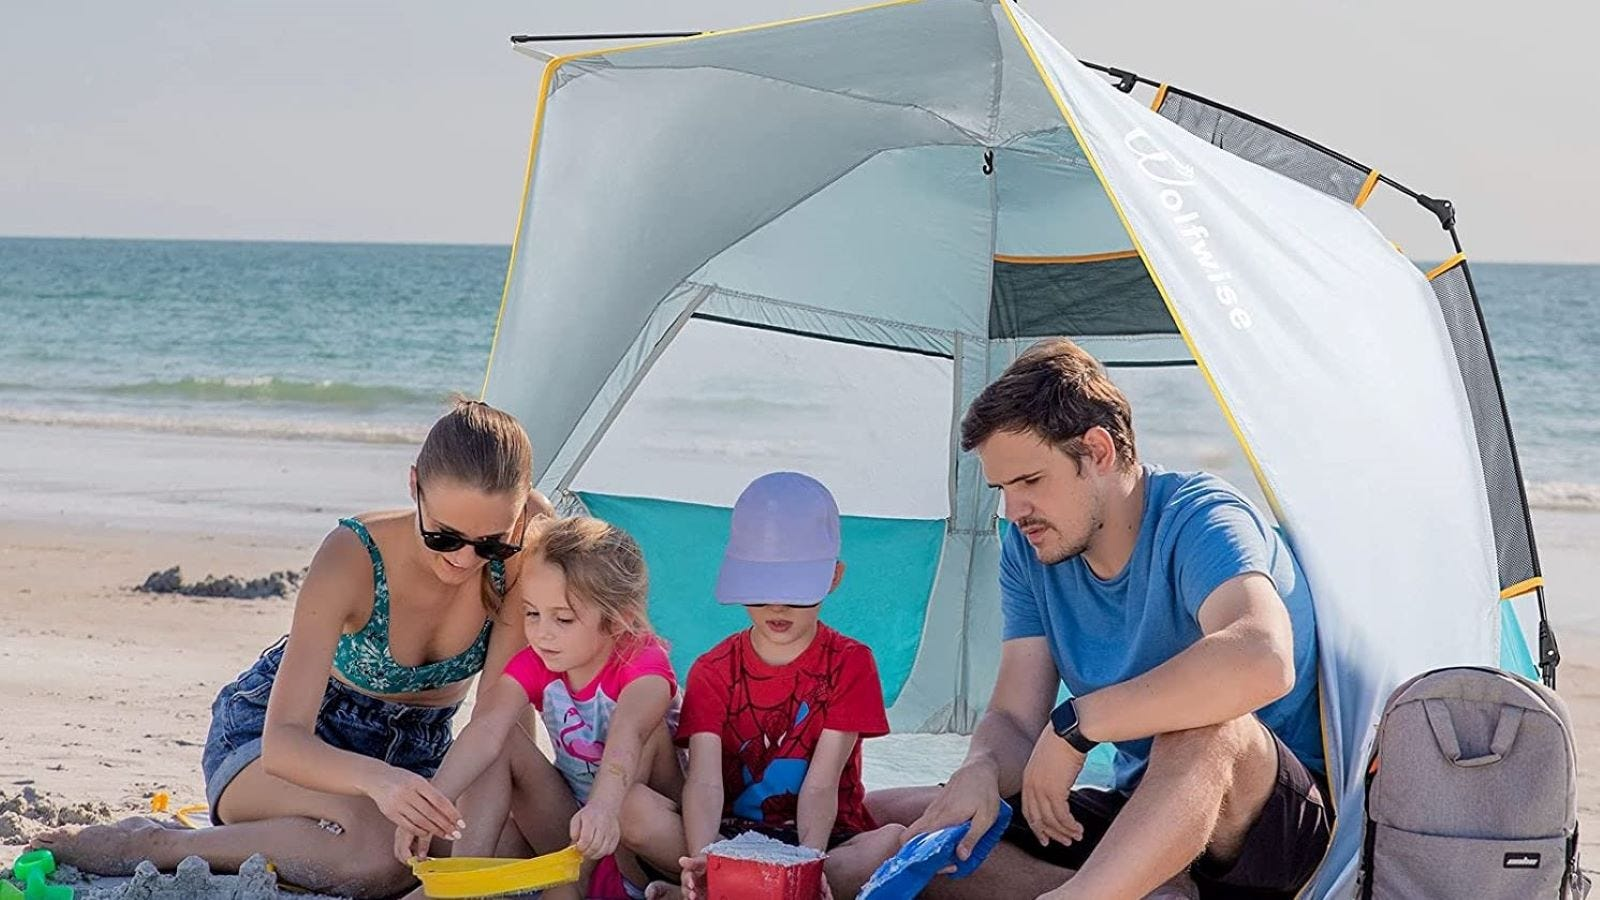 A man, woman, and two children on the beach in a WolfWise Beach Tent.